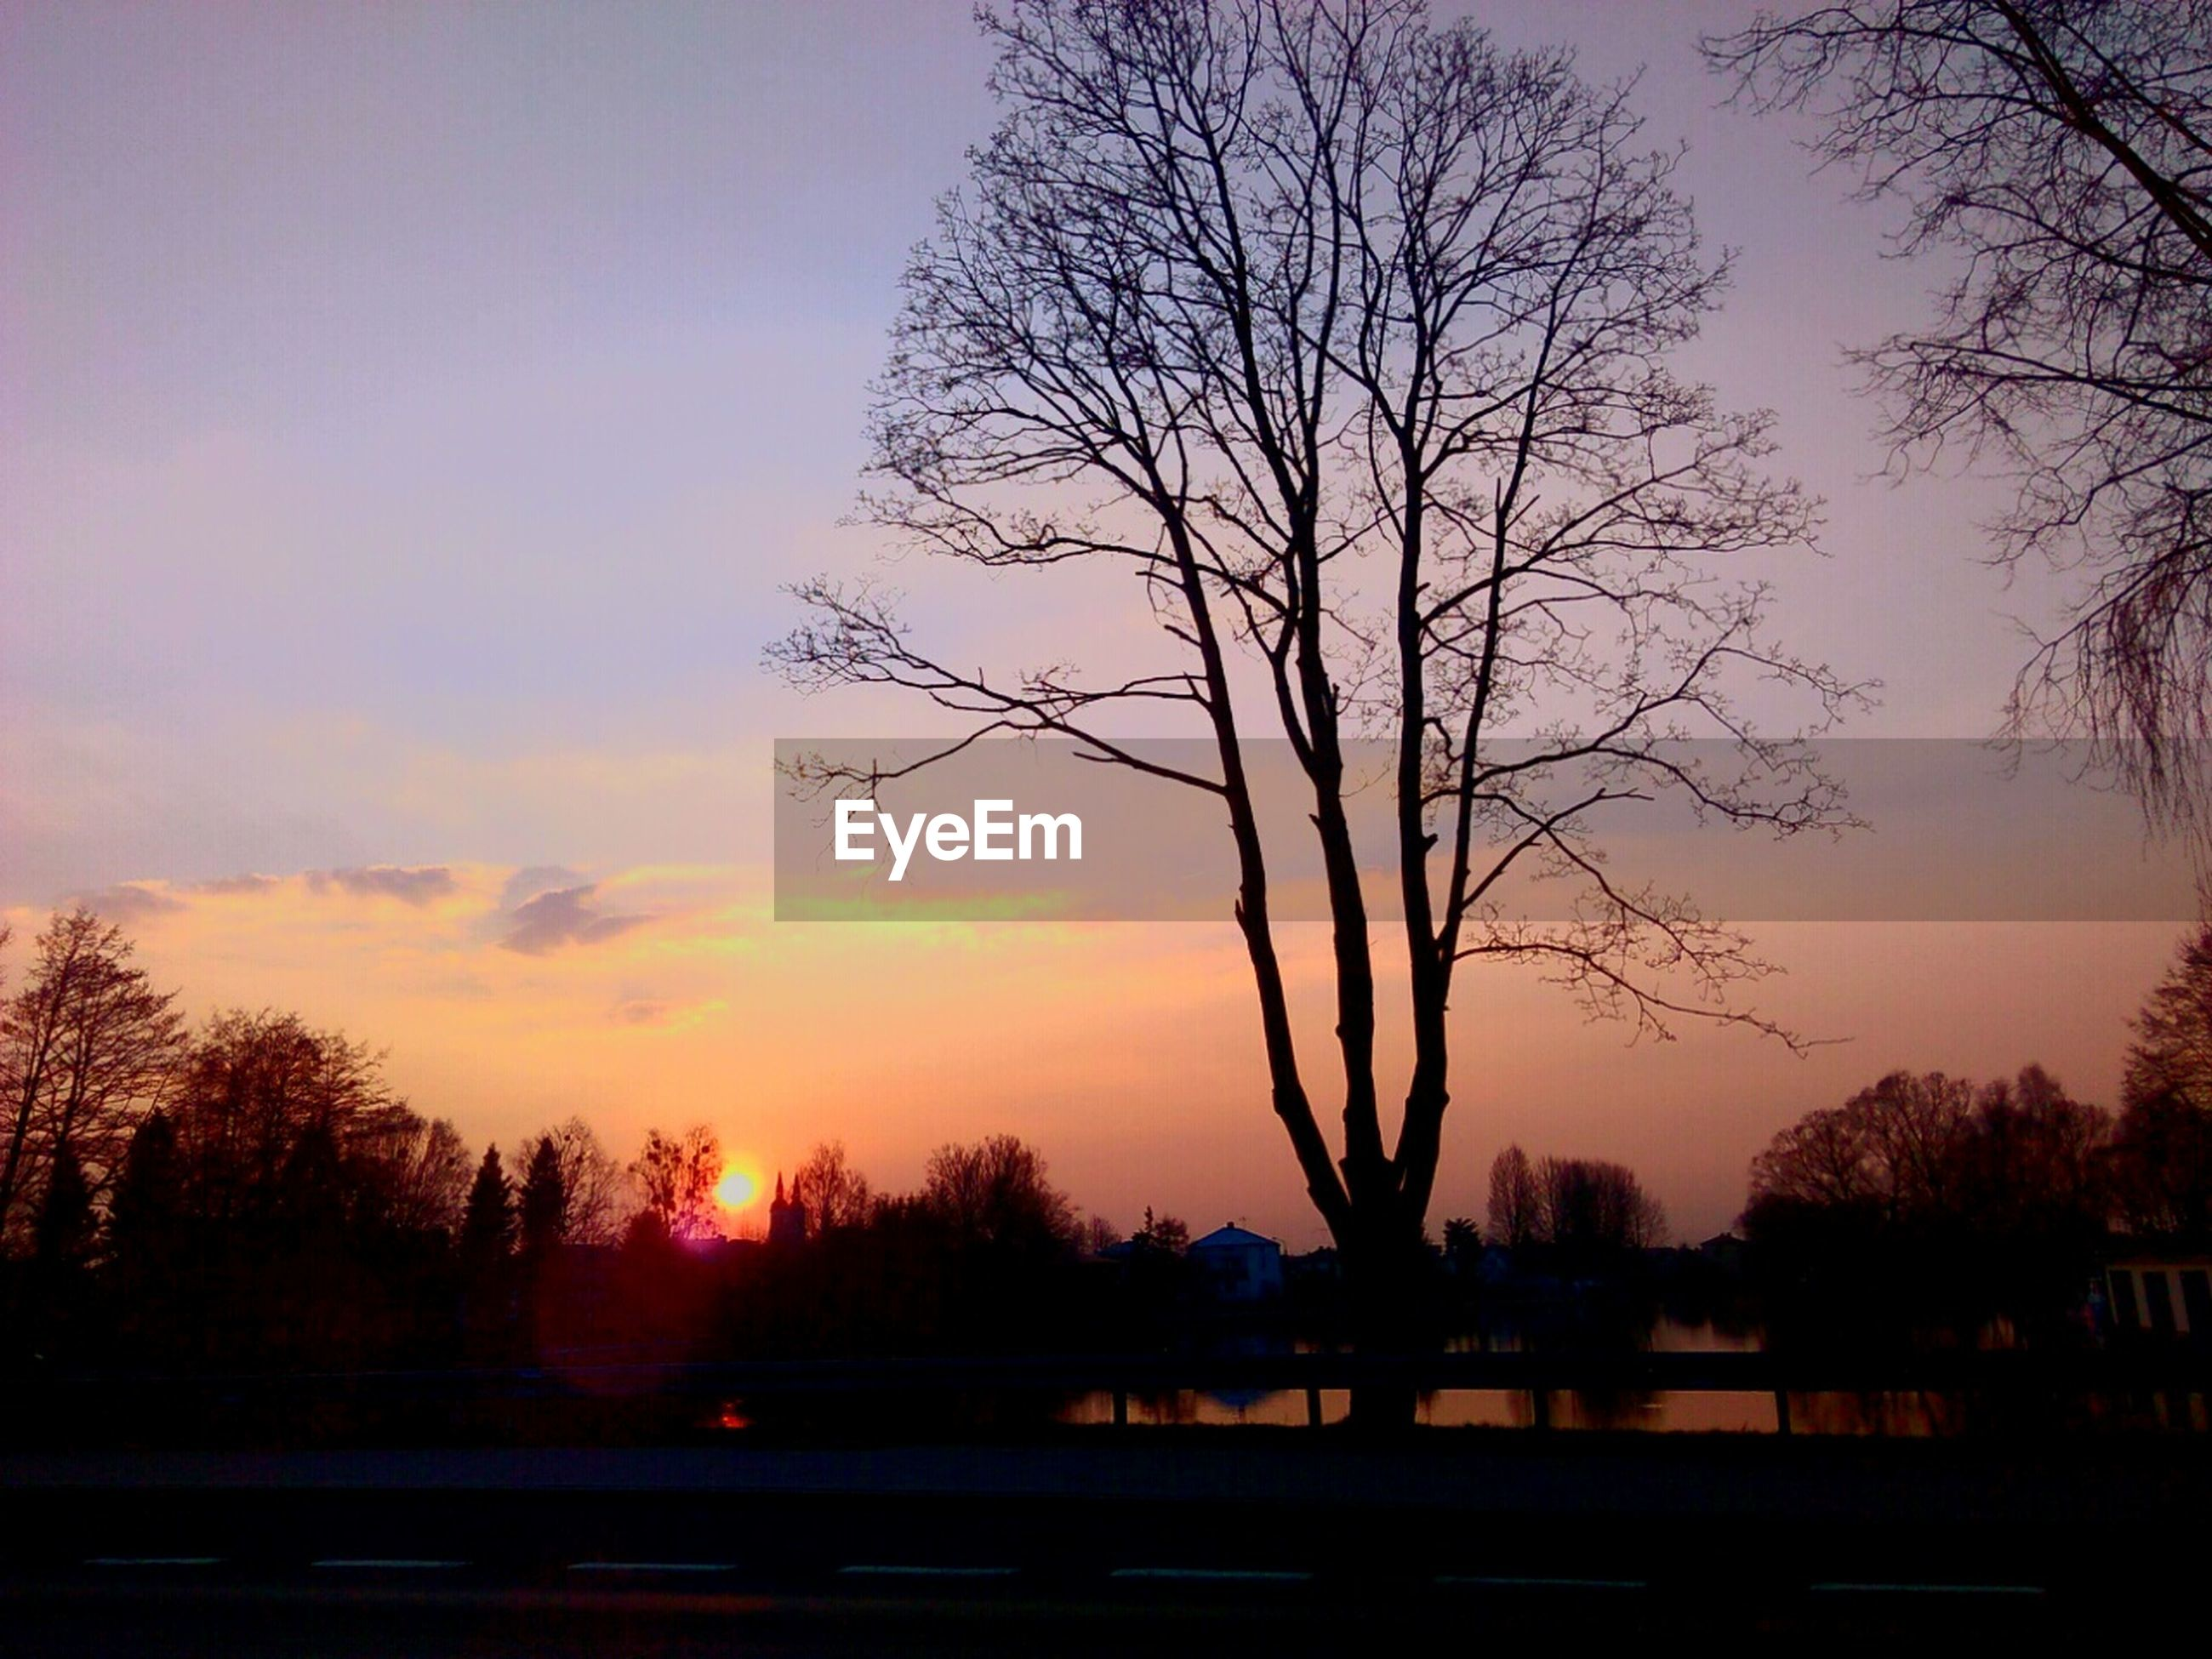 sunset, silhouette, tree, bare tree, tranquility, tranquil scene, scenics, sky, beauty in nature, nature, branch, orange color, idyllic, water, landscape, outdoors, dusk, no people, lake, non-urban scene